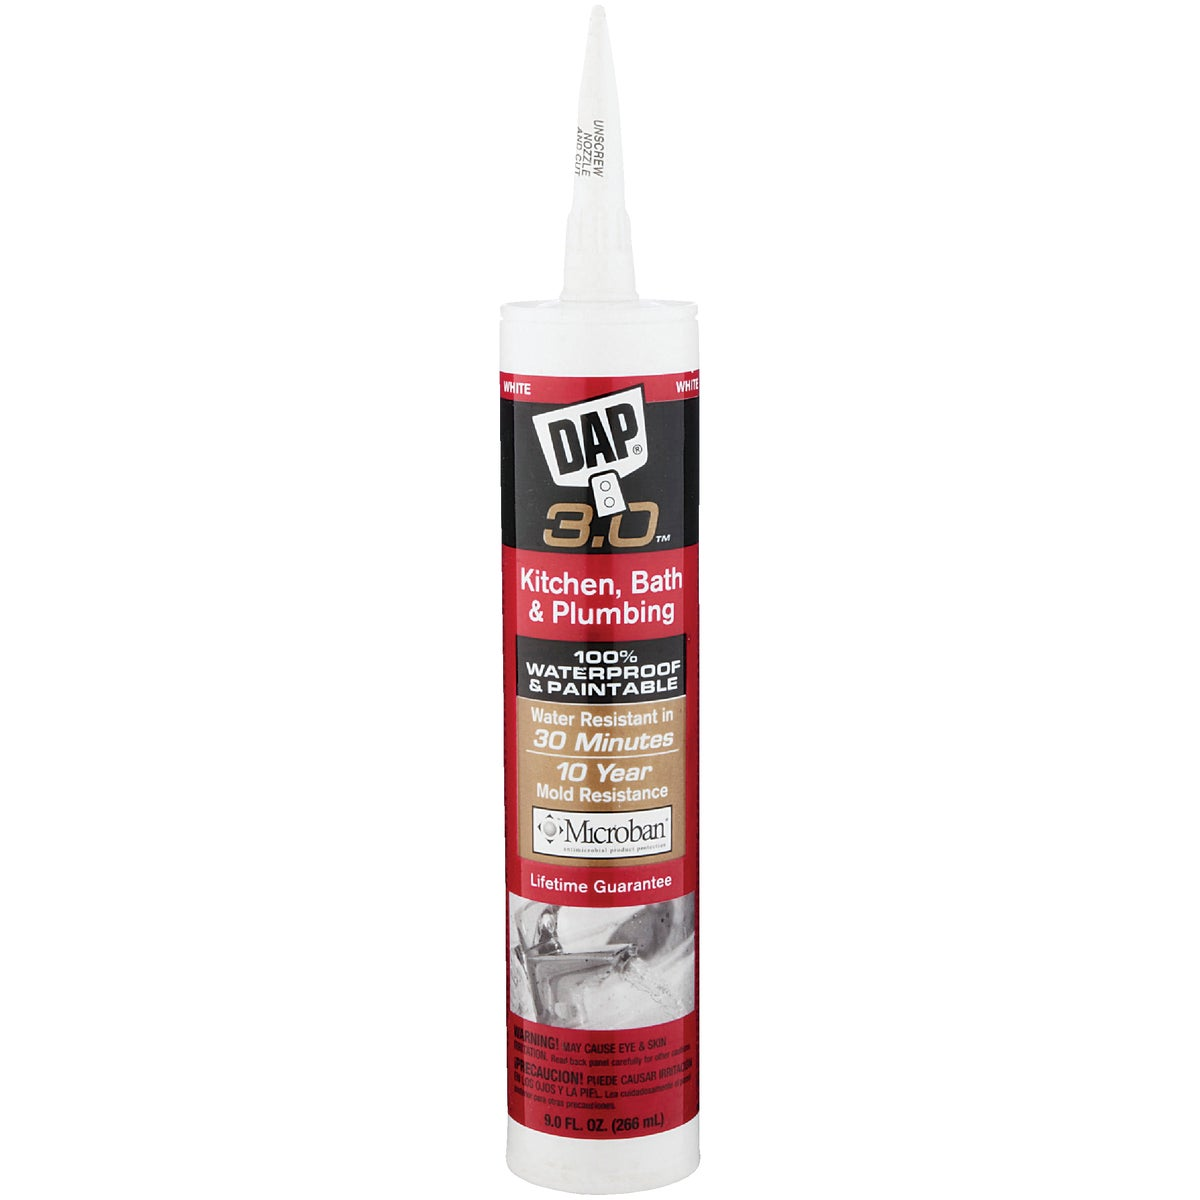 WHITE FD KIT/BATH CAULK - 00790 by Dap Inc